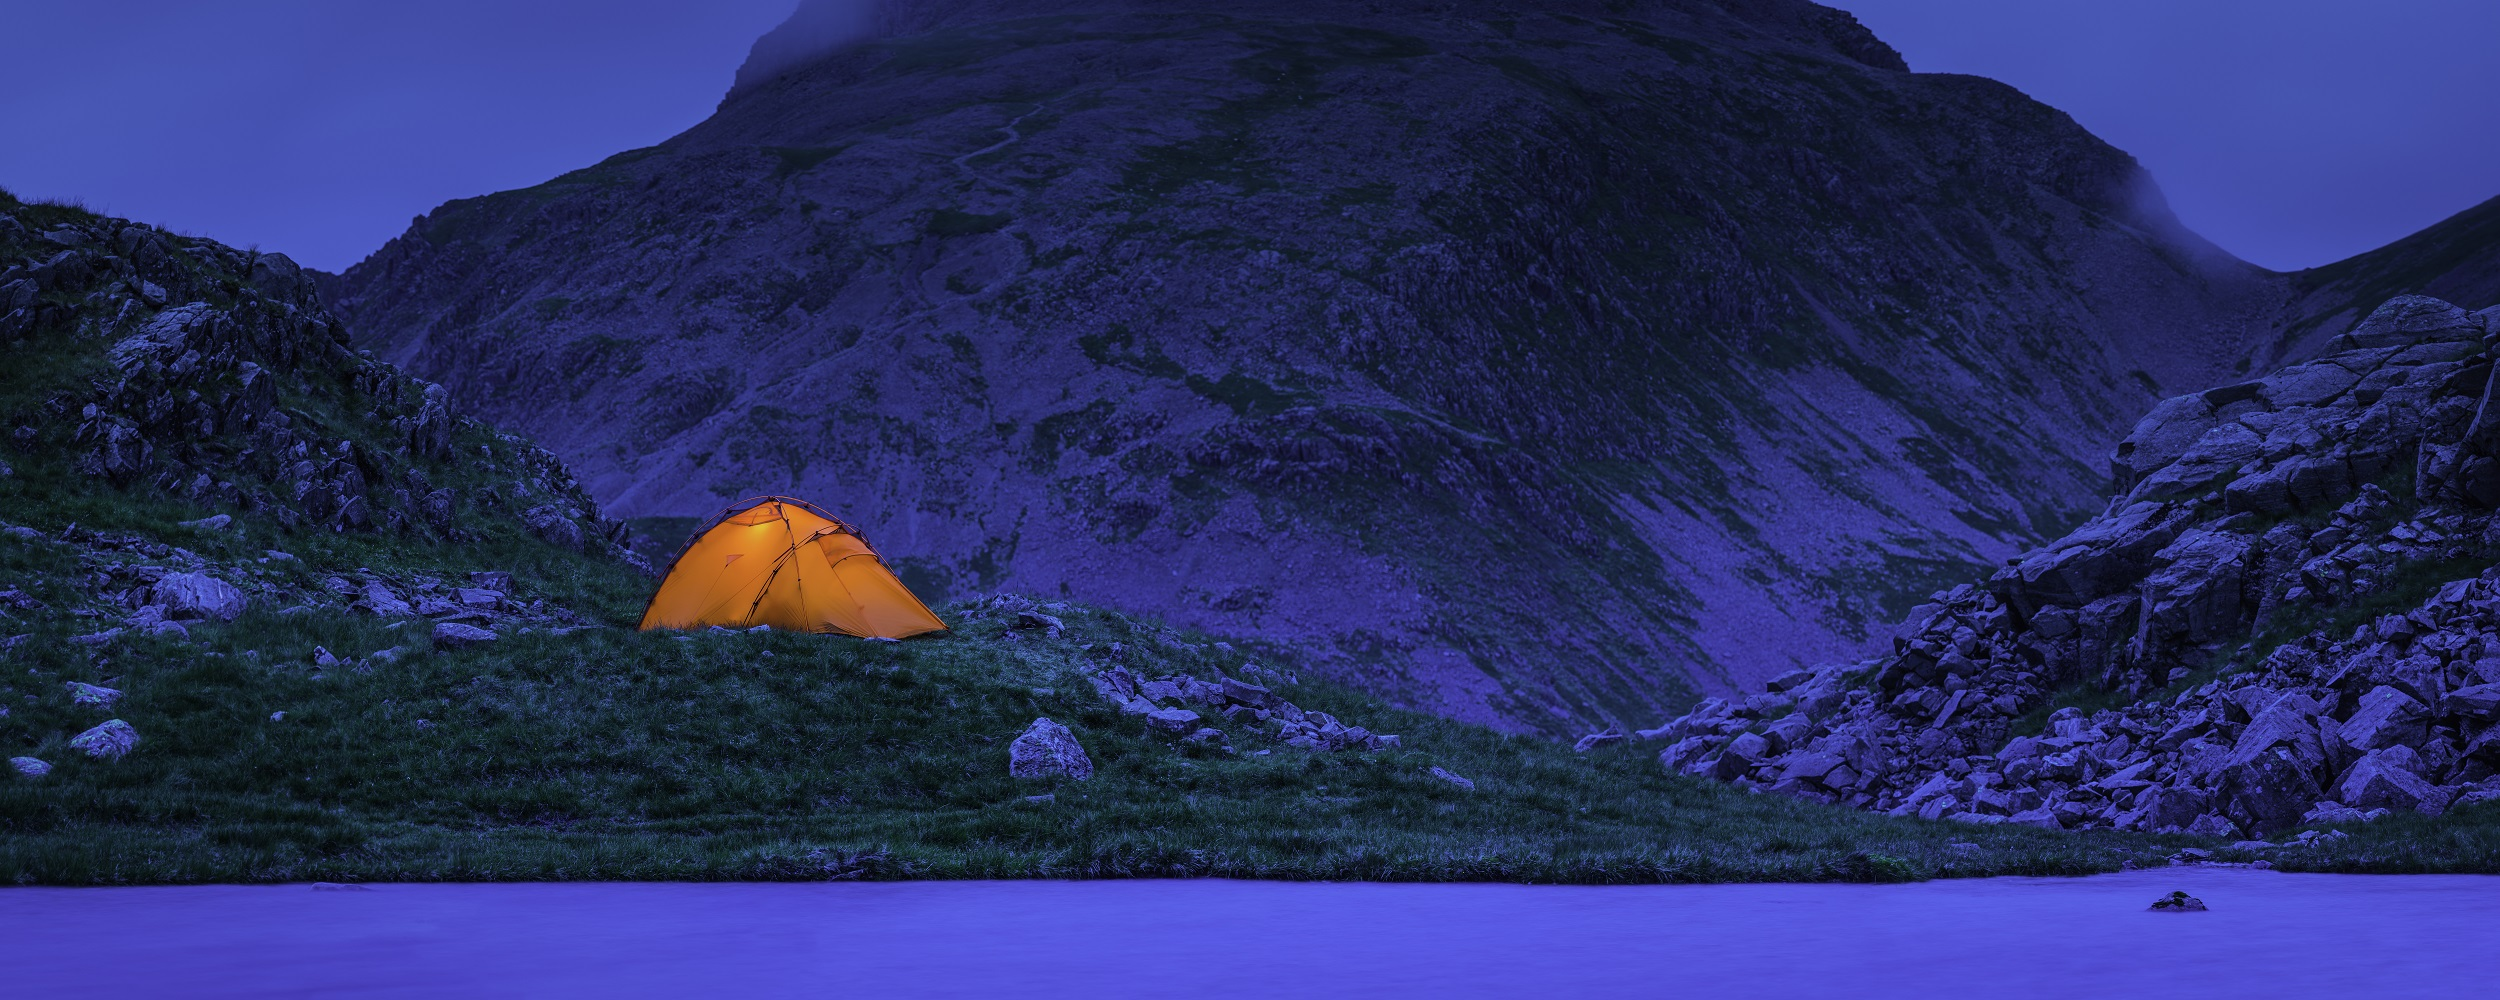 Wild camping 2